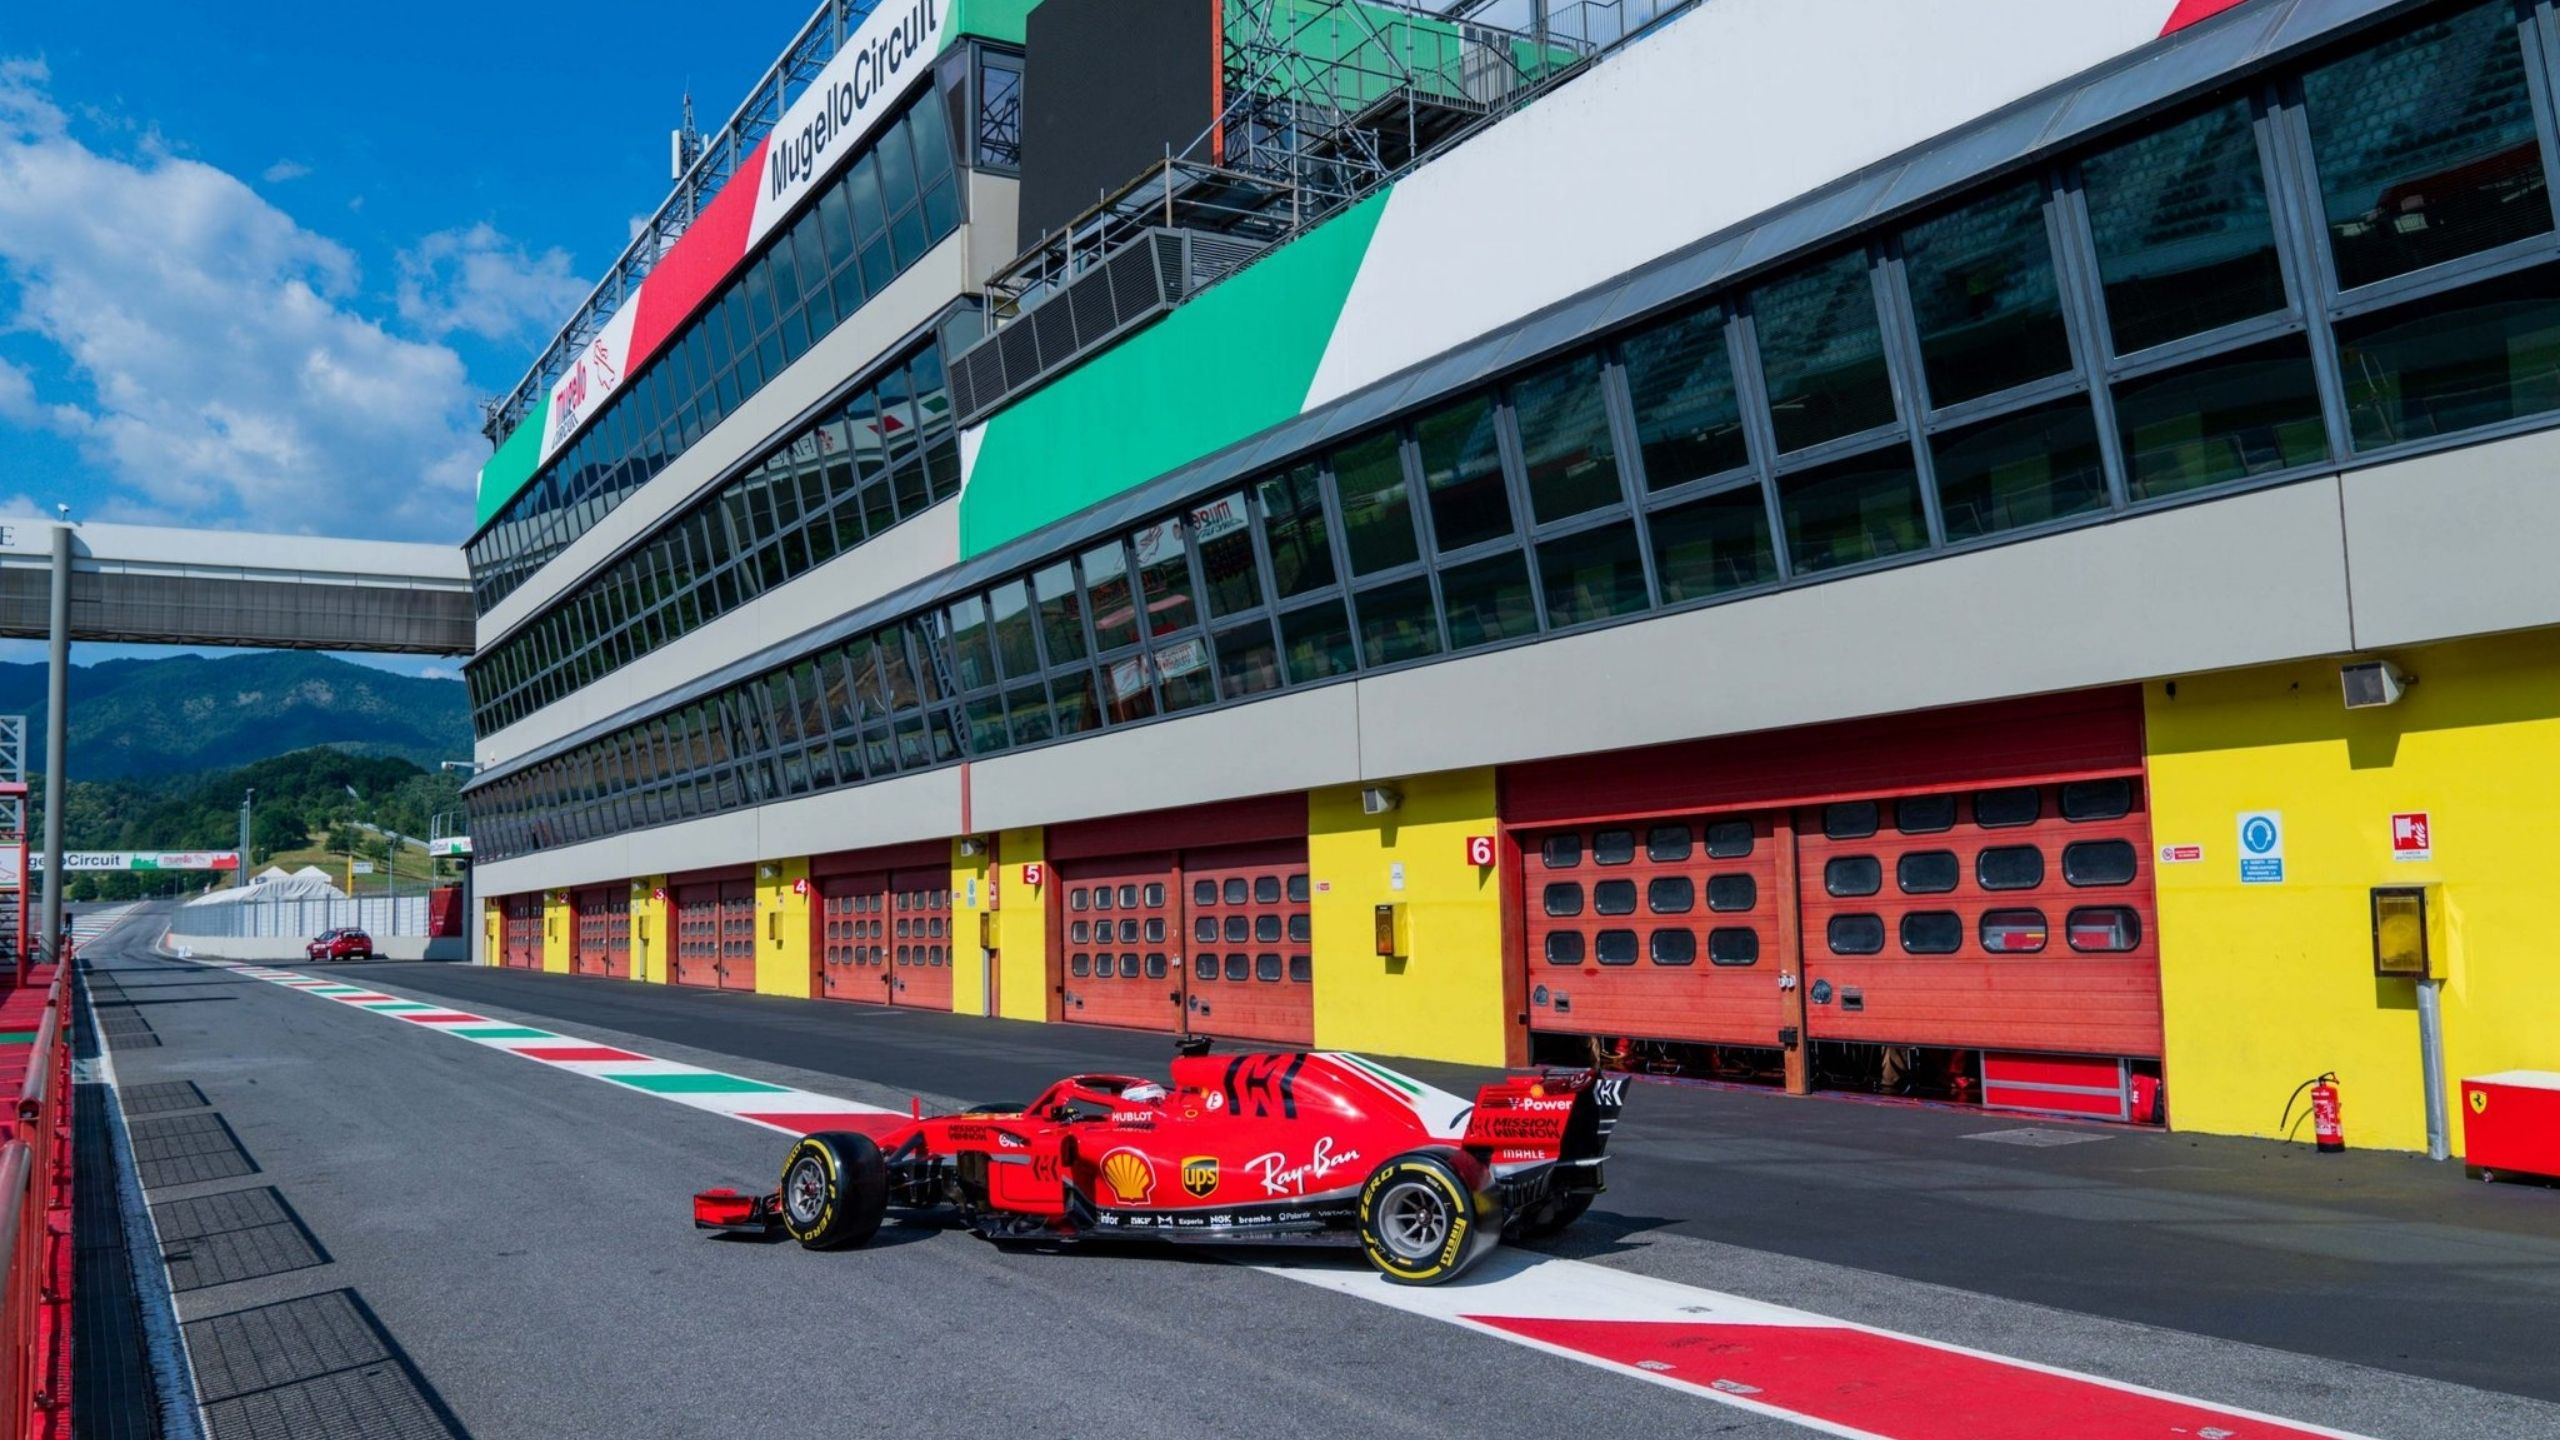 F1 2021 Calendar: F1 Commission to reveal provisional 2021 race calendar to teams today